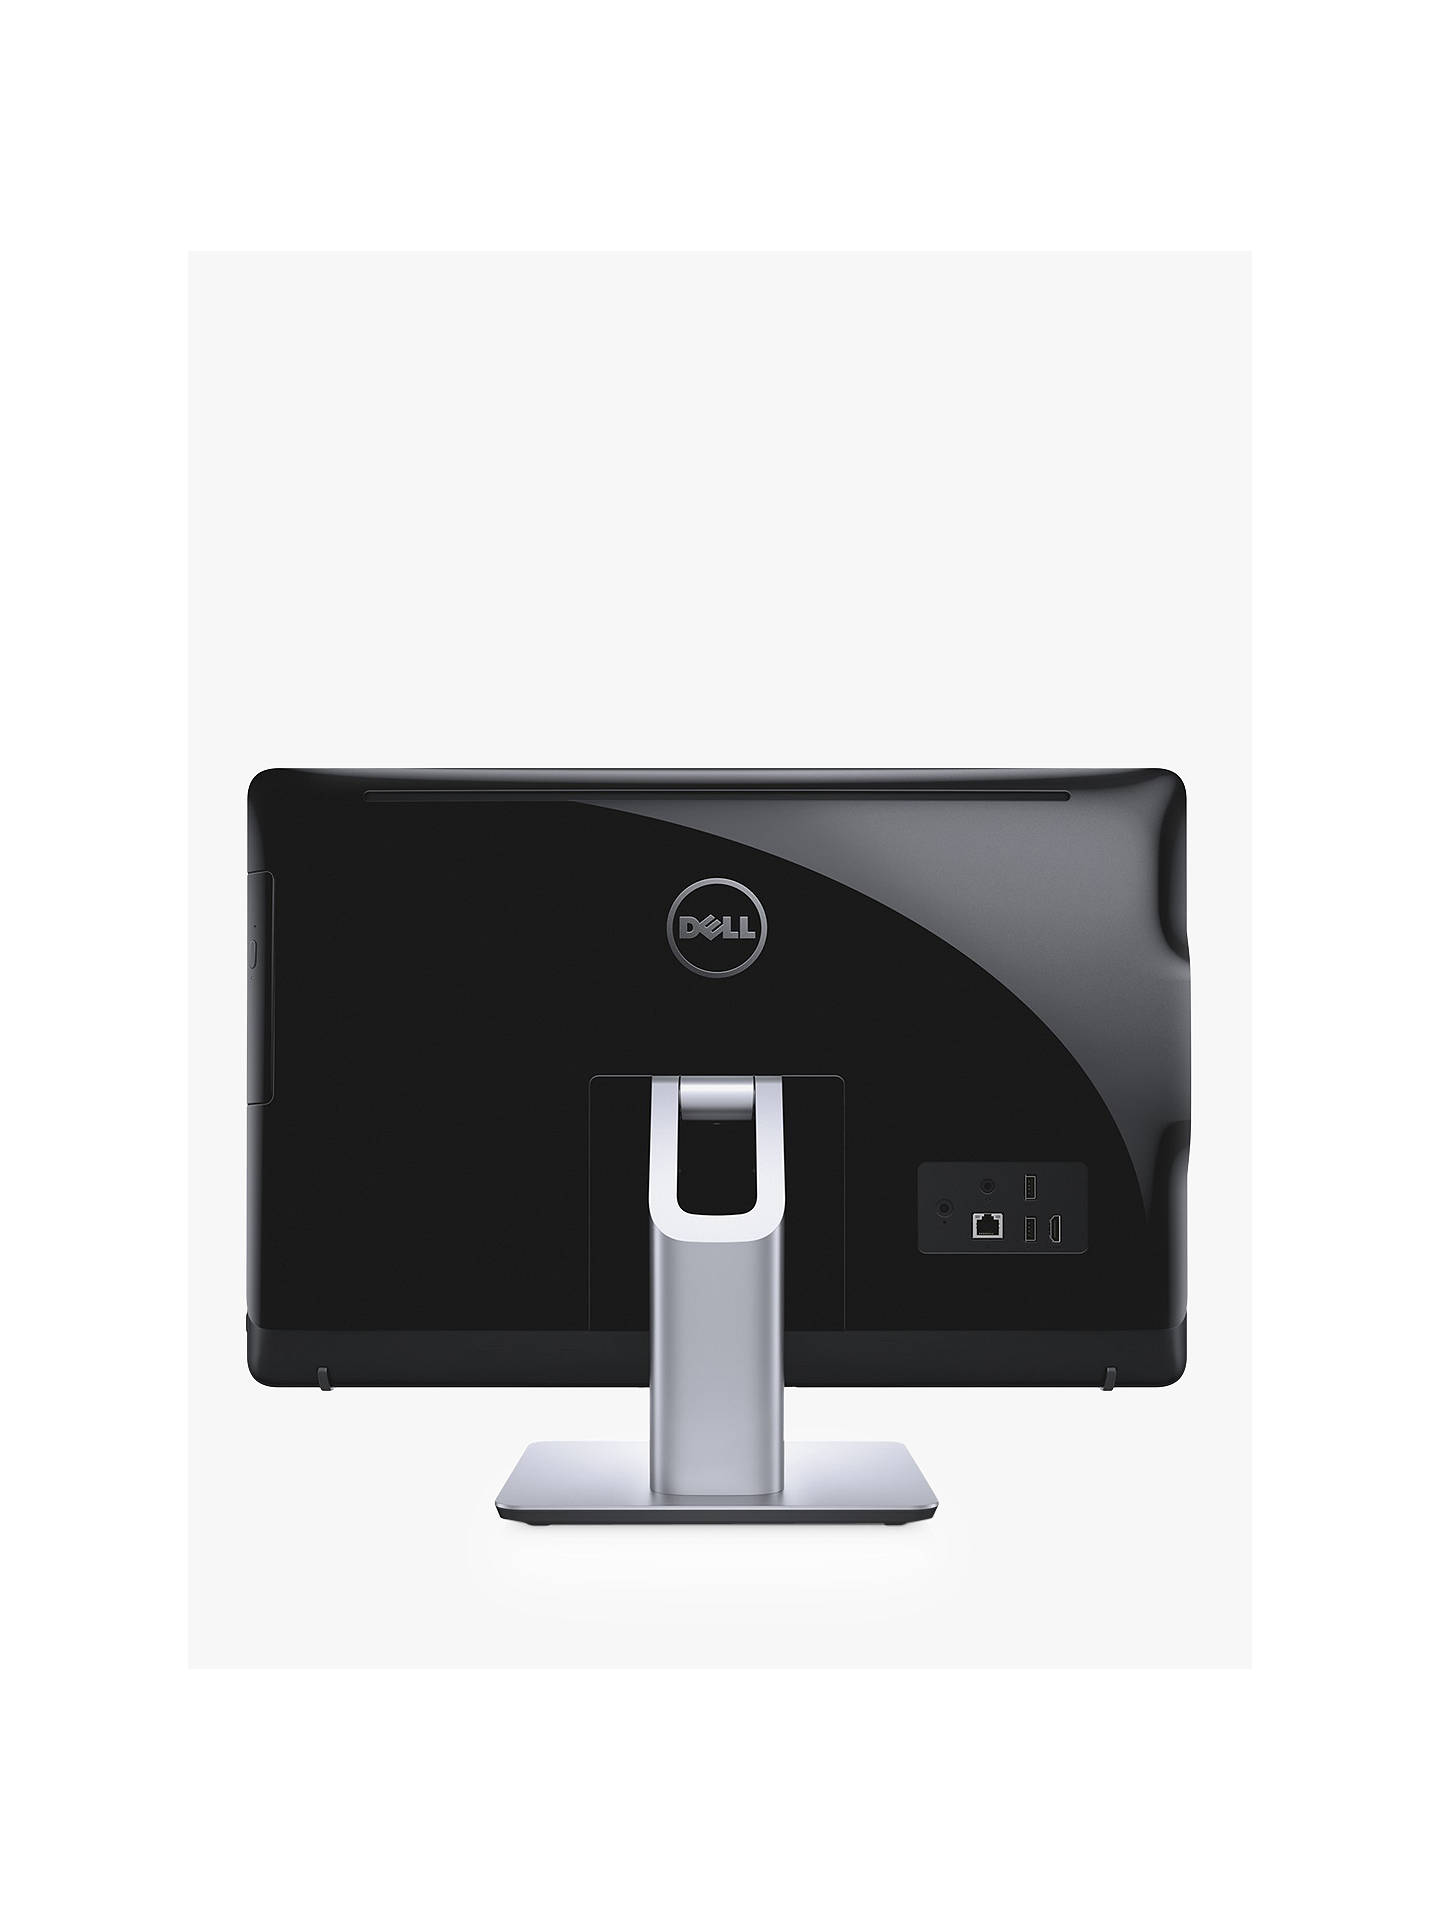 Dell Inspiron 22 3000 All-in-One Desktop, Intel Core i3, 8GB RAM, 1TB HDD,  21 5